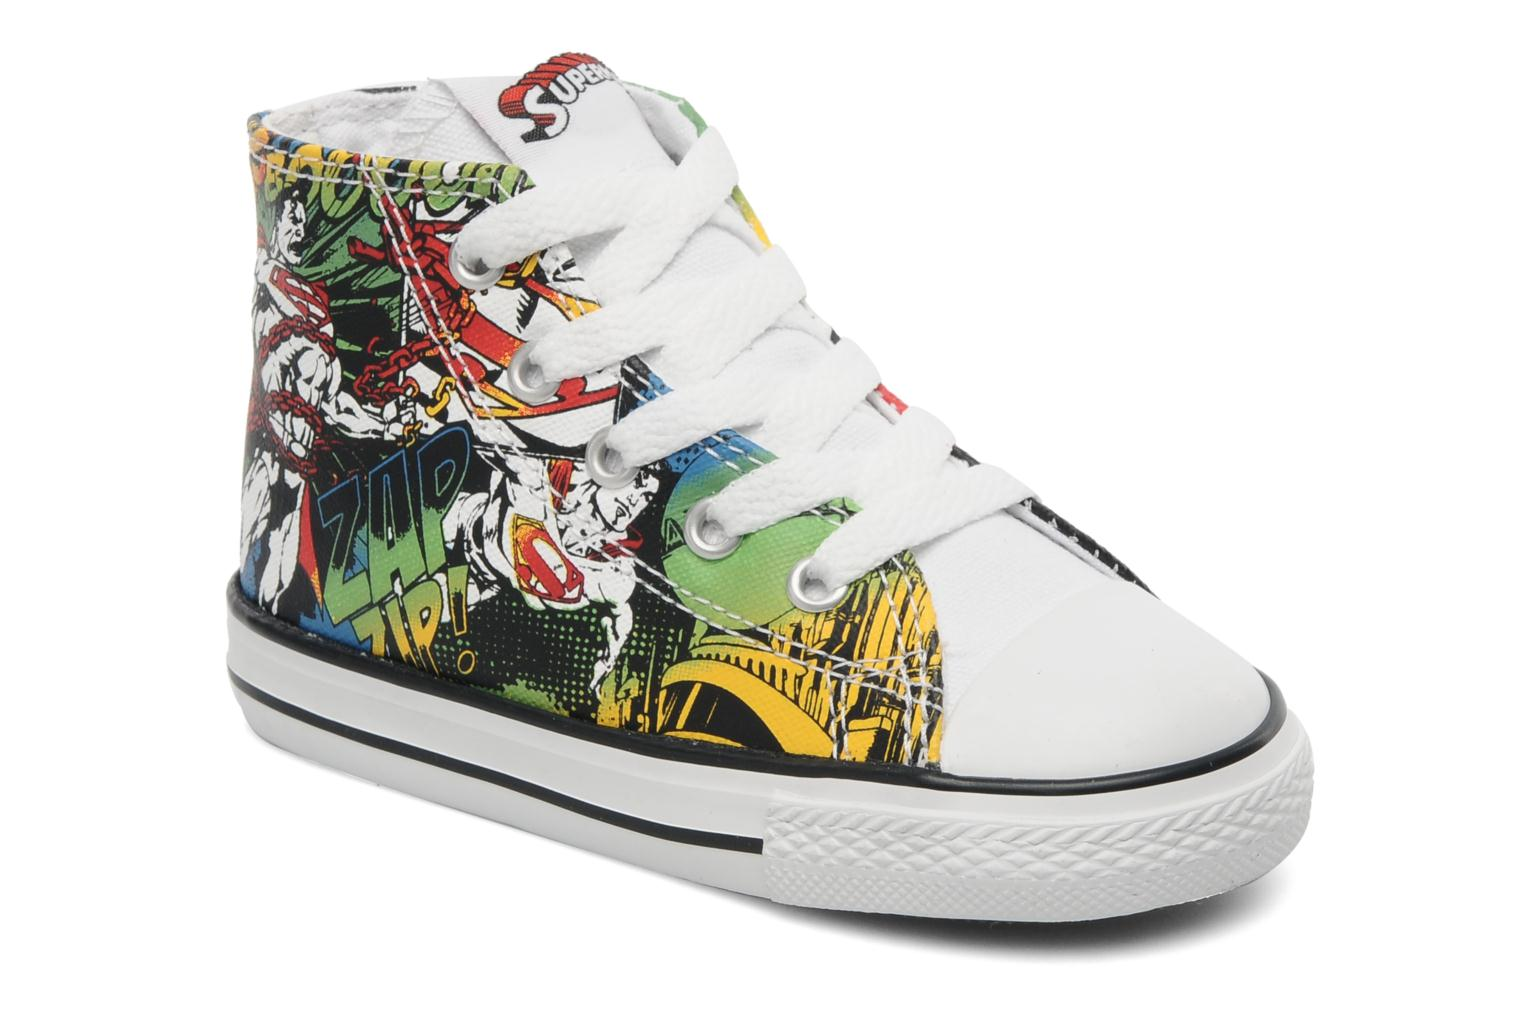 Sneakers CT Super M KR HI by Converse